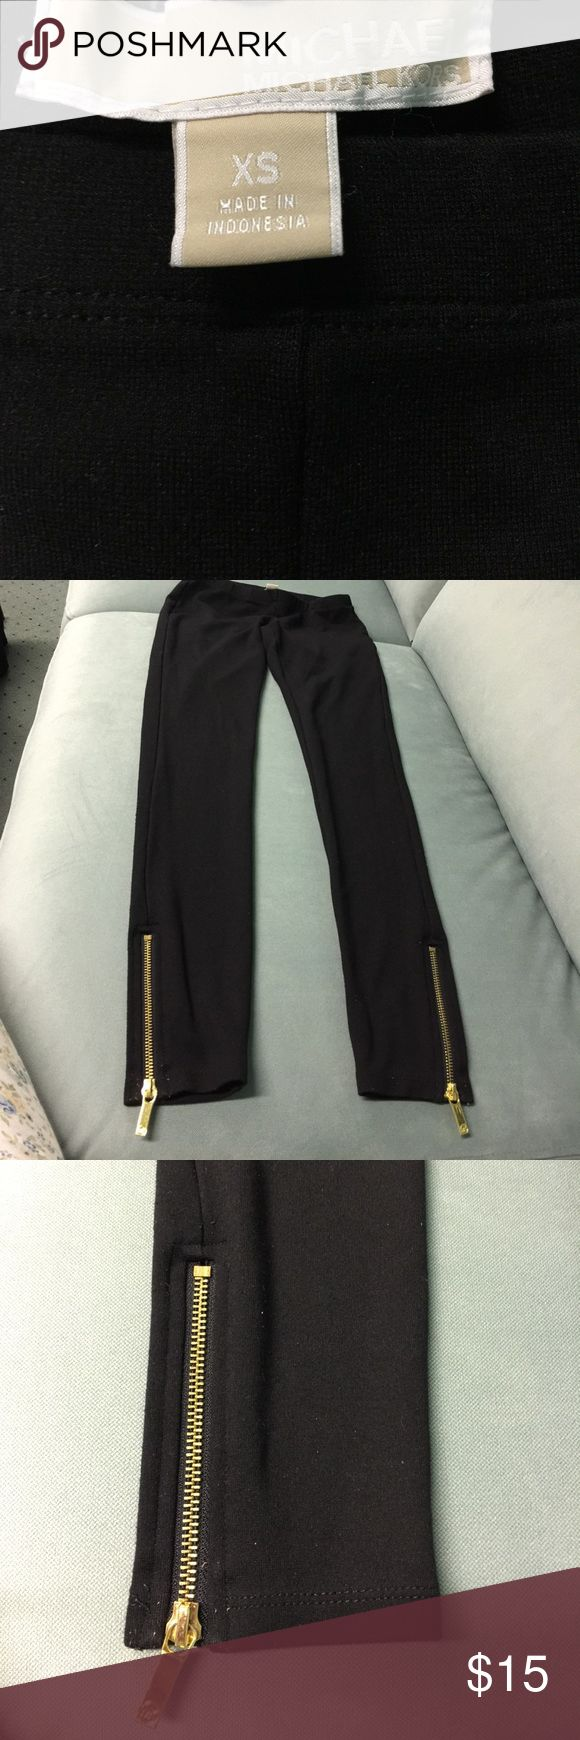 MICHAEL BY MICHAEL KORS  ZIPPERED ANKLE LEGGINGS Great pair of stretch leggings in black with gold zipper ankles with MK LOGO on zipper. In good condition ❤️ Size XS MICHAEL Michael Kors Pants Leggings